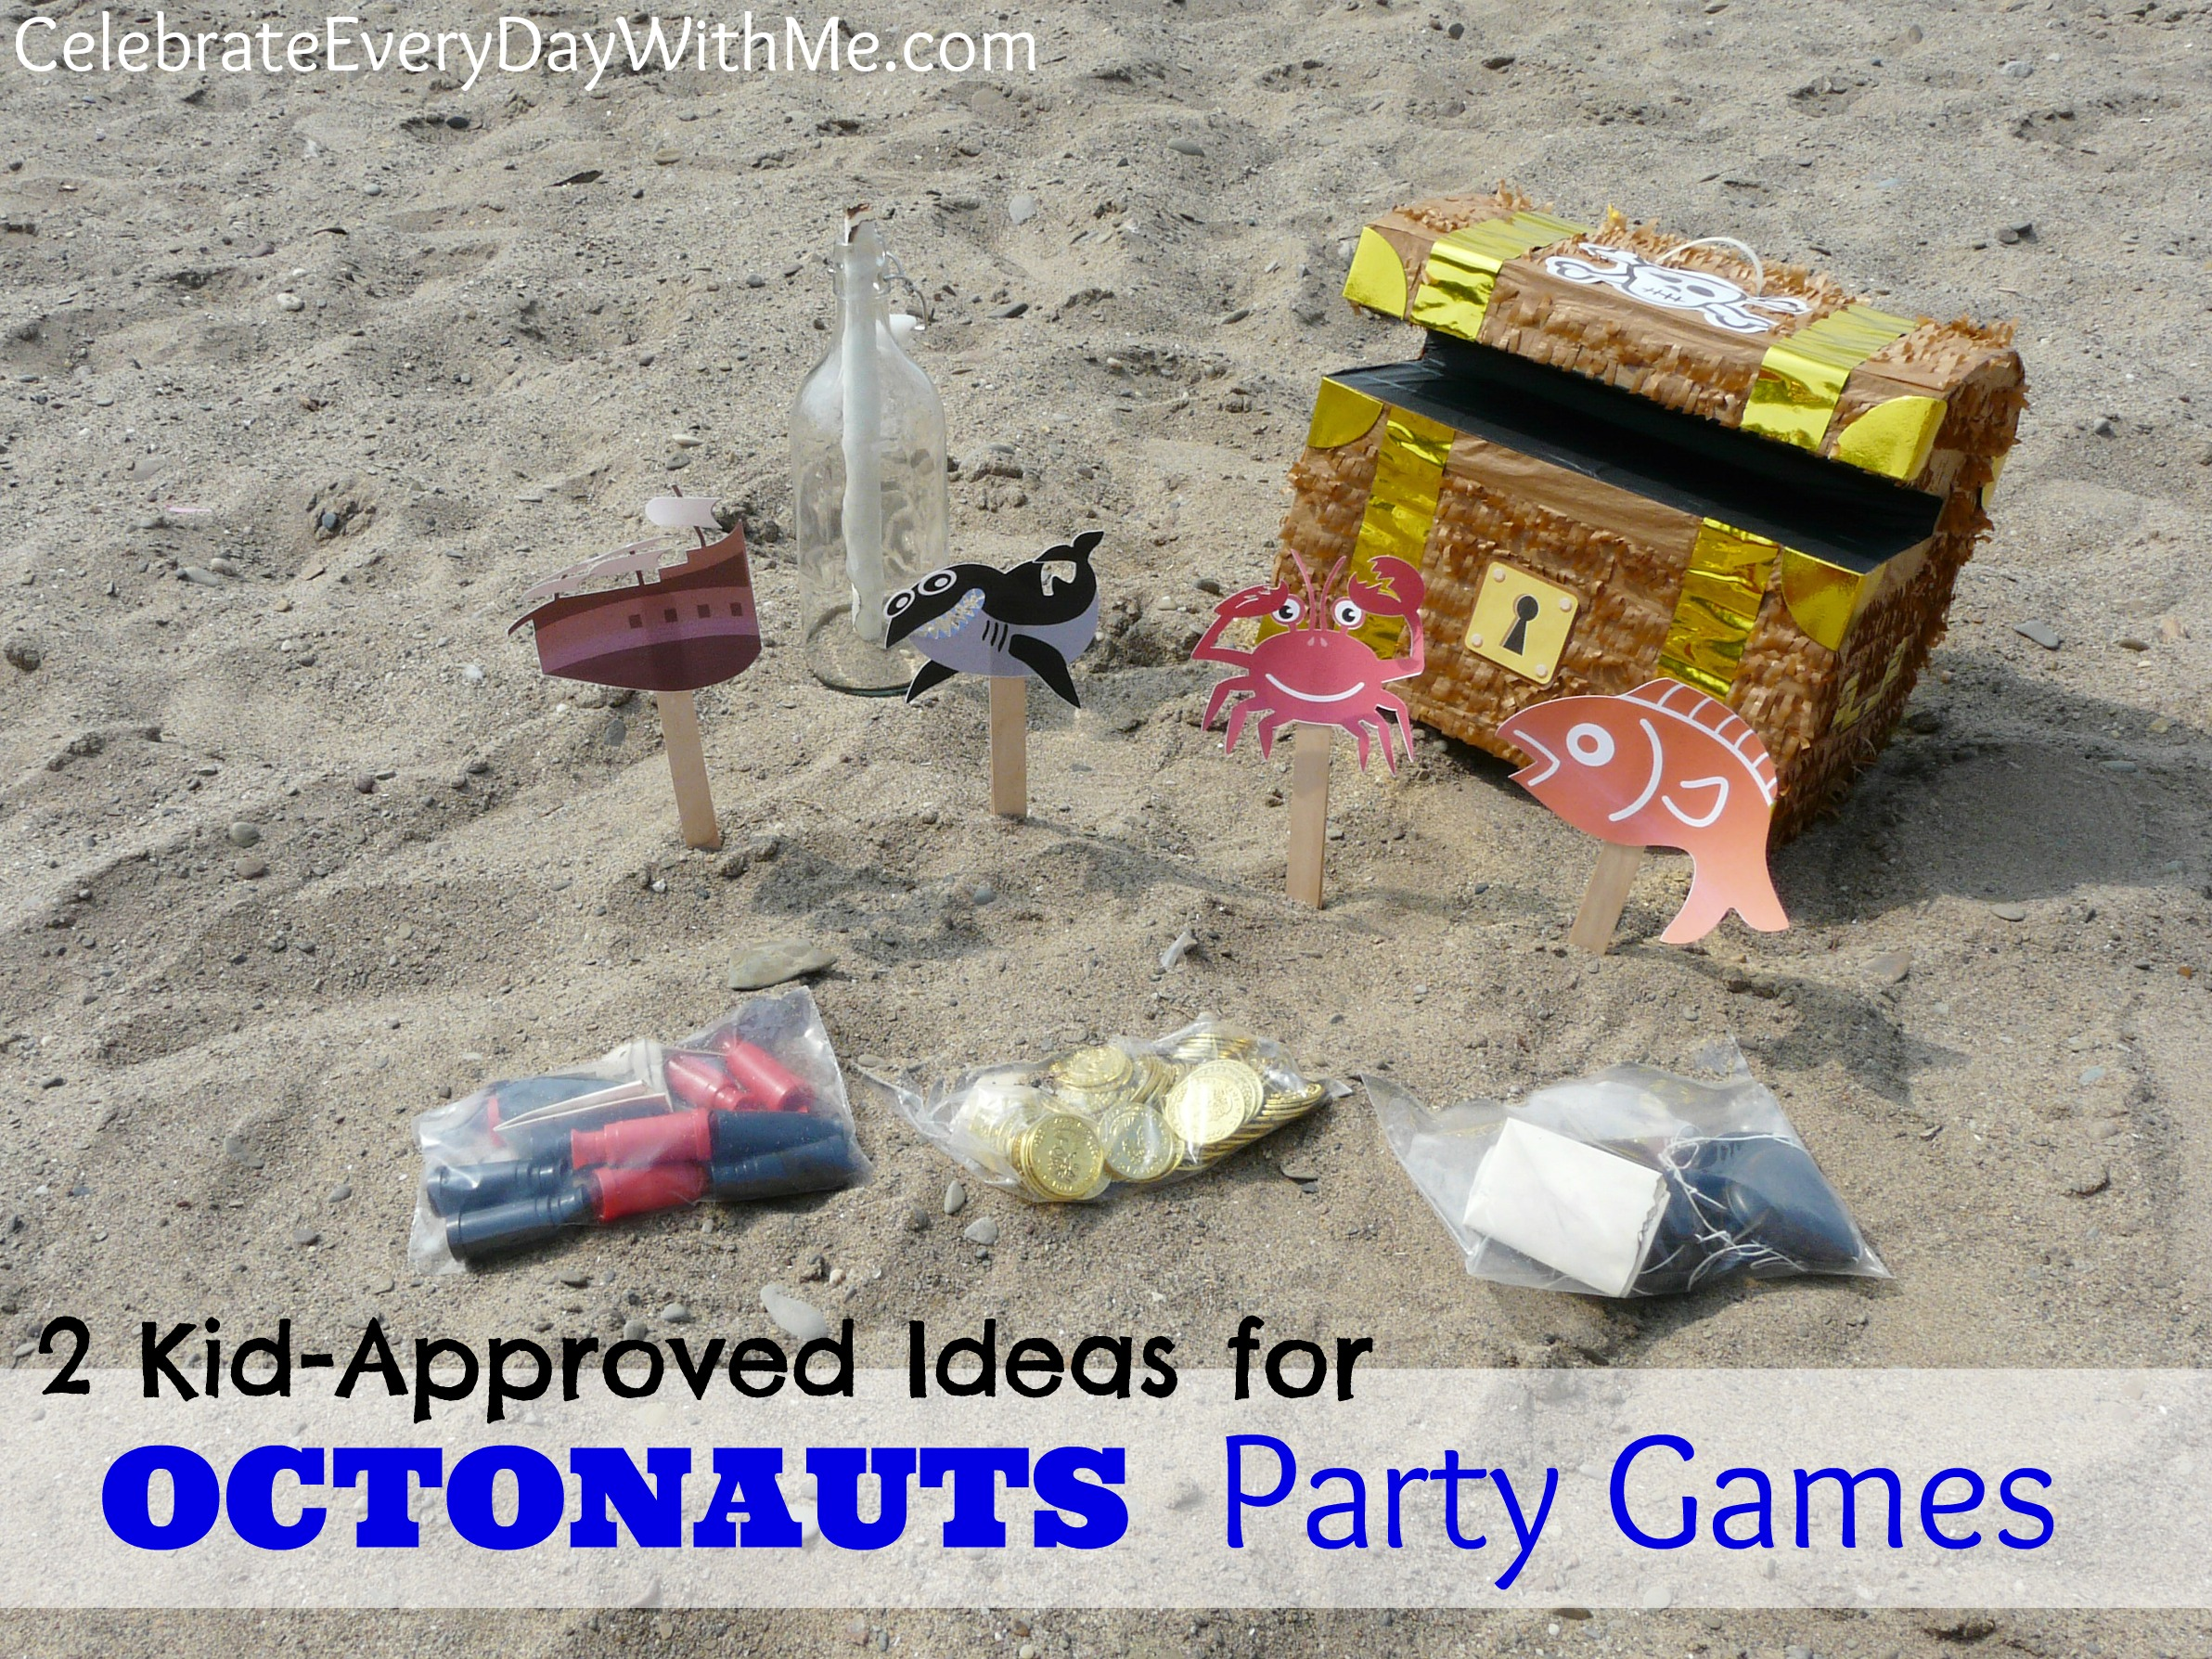 Octonauts Party Games the Kids Will Love!